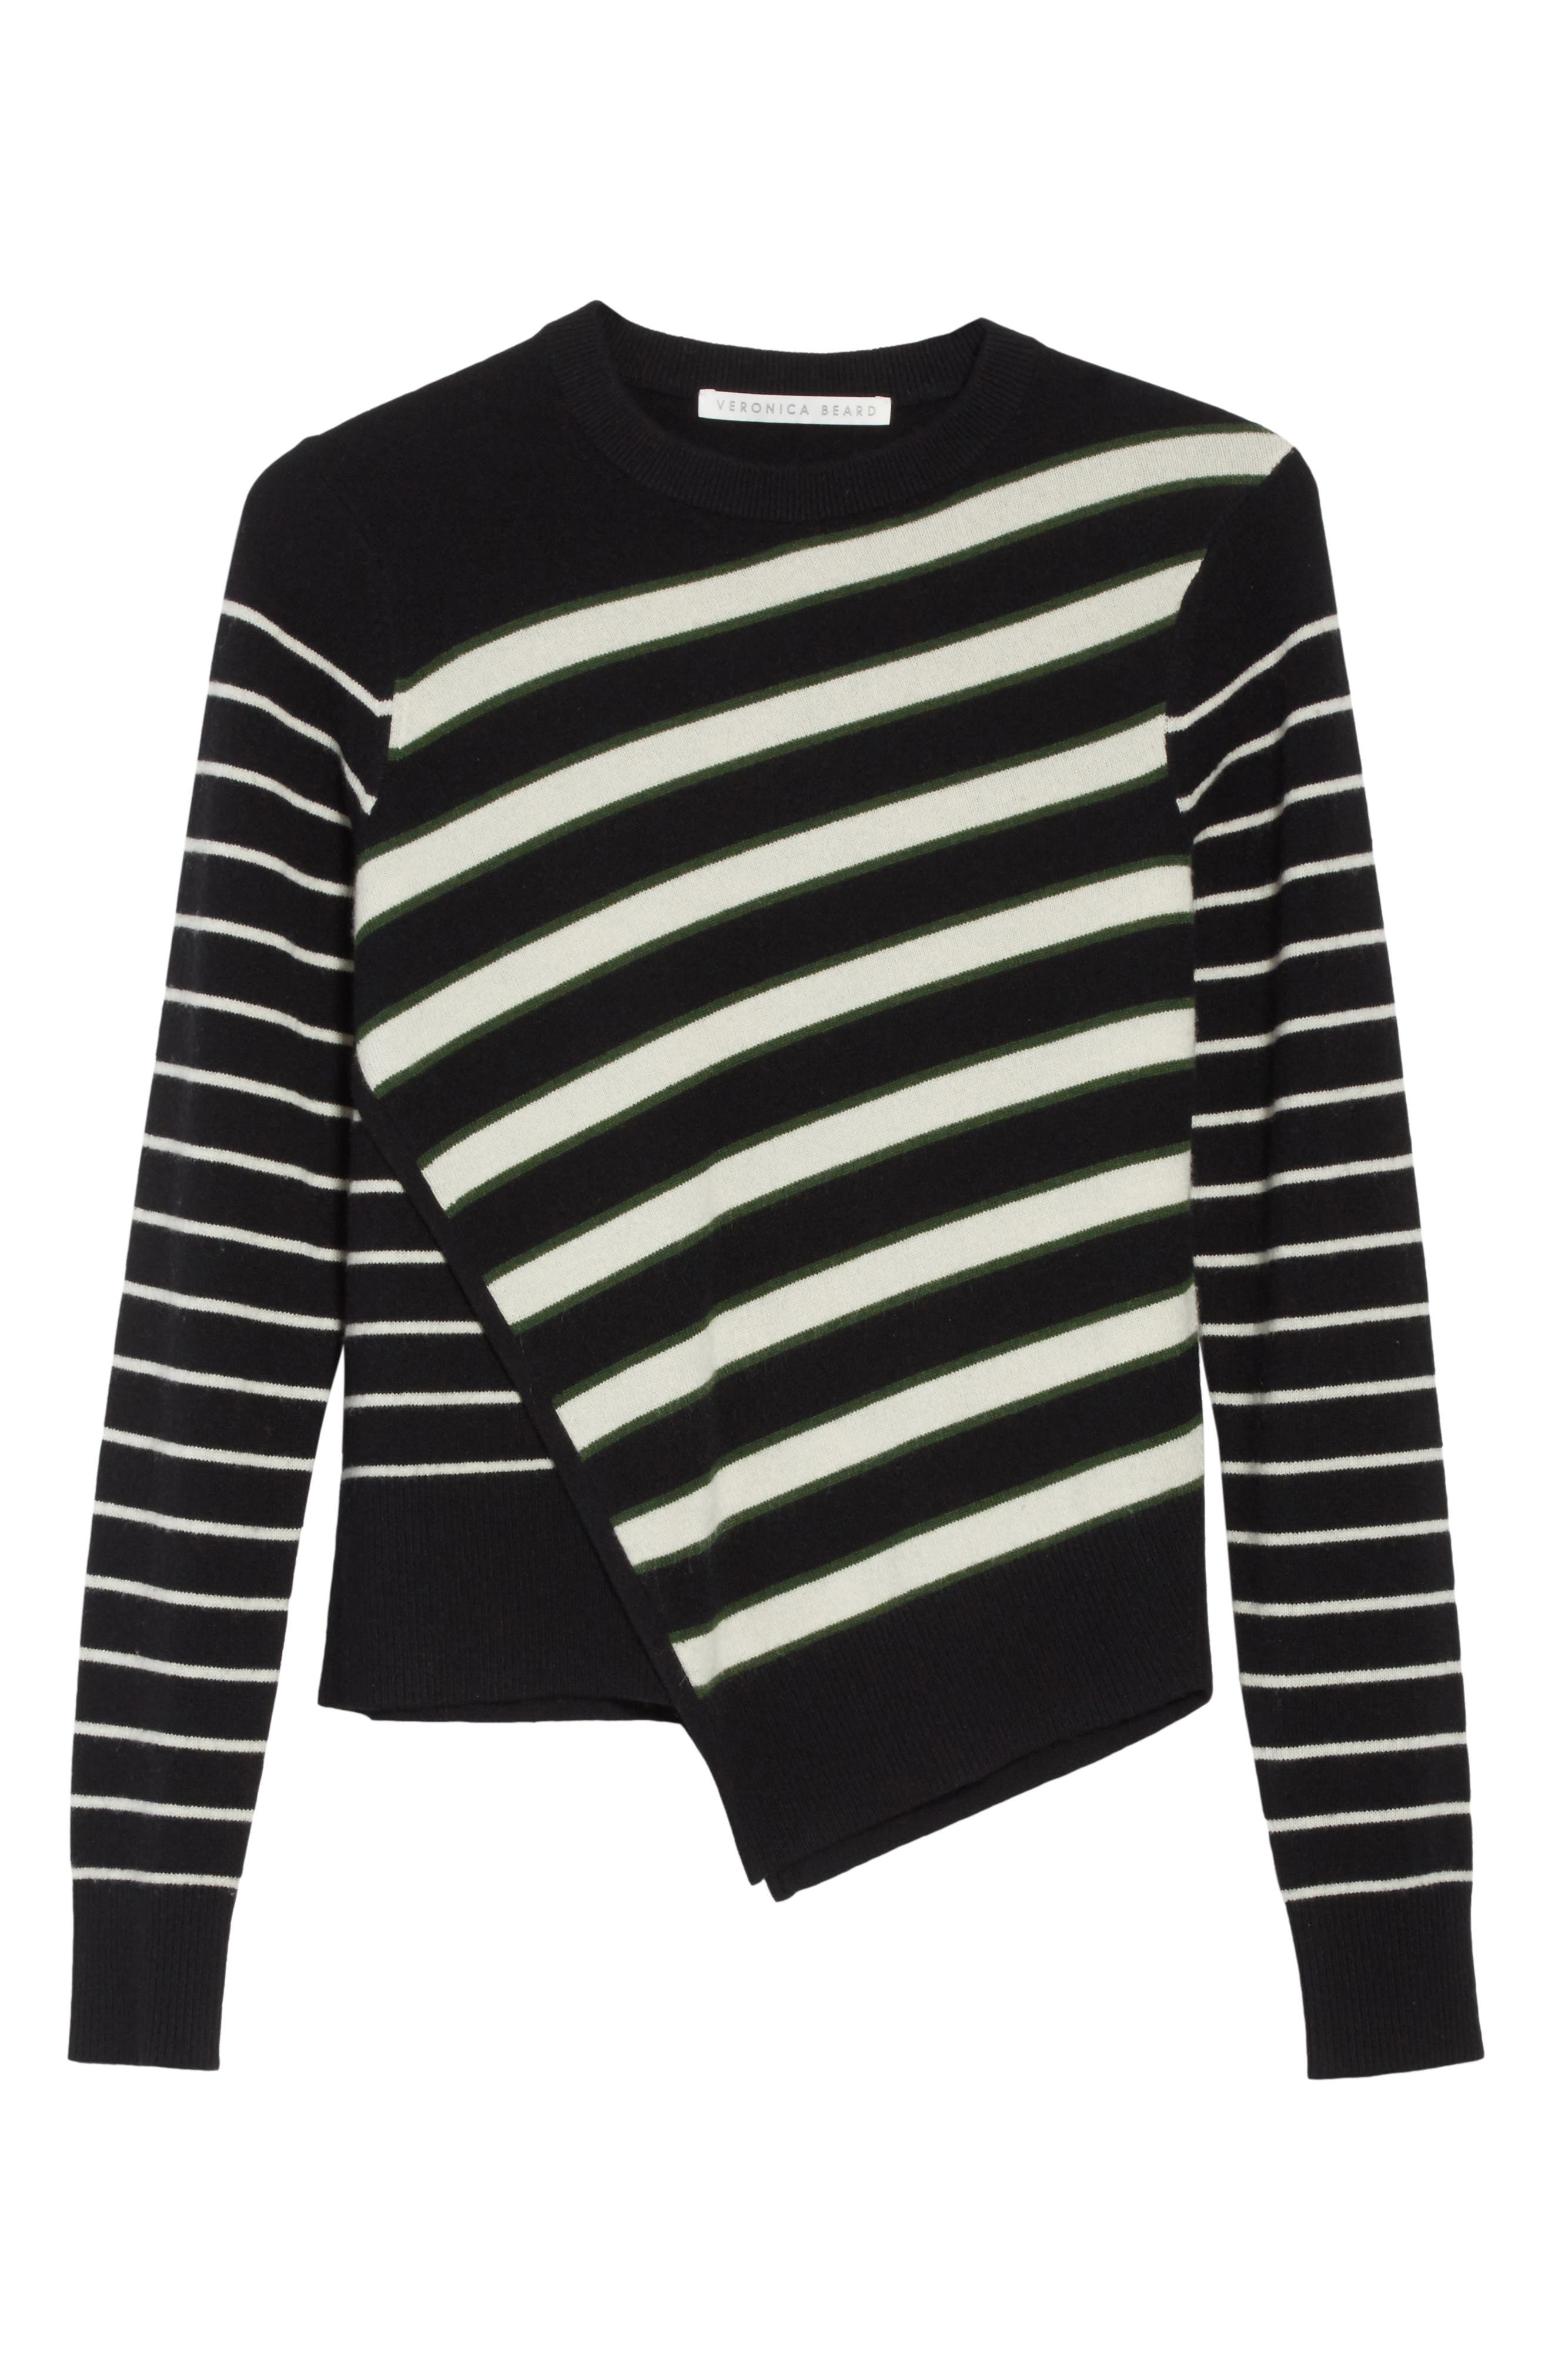 Pepper Cashmere Sweater,                             Alternate thumbnail 6, color,                             007